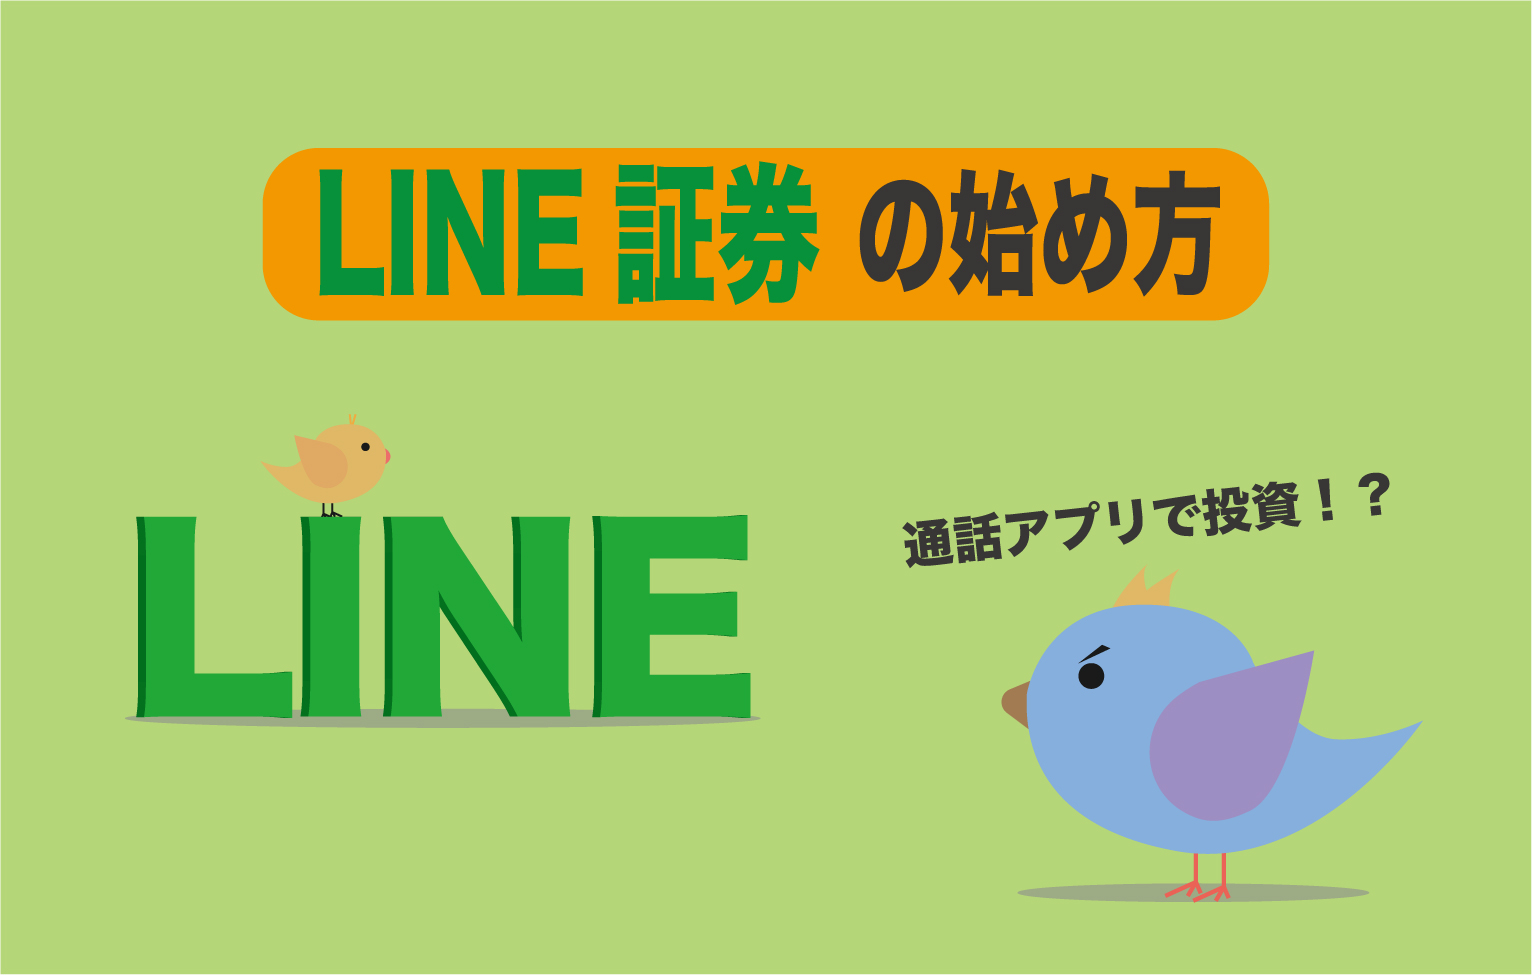 LINE証券のやり方は?【ライン証券を始める方法を解説】